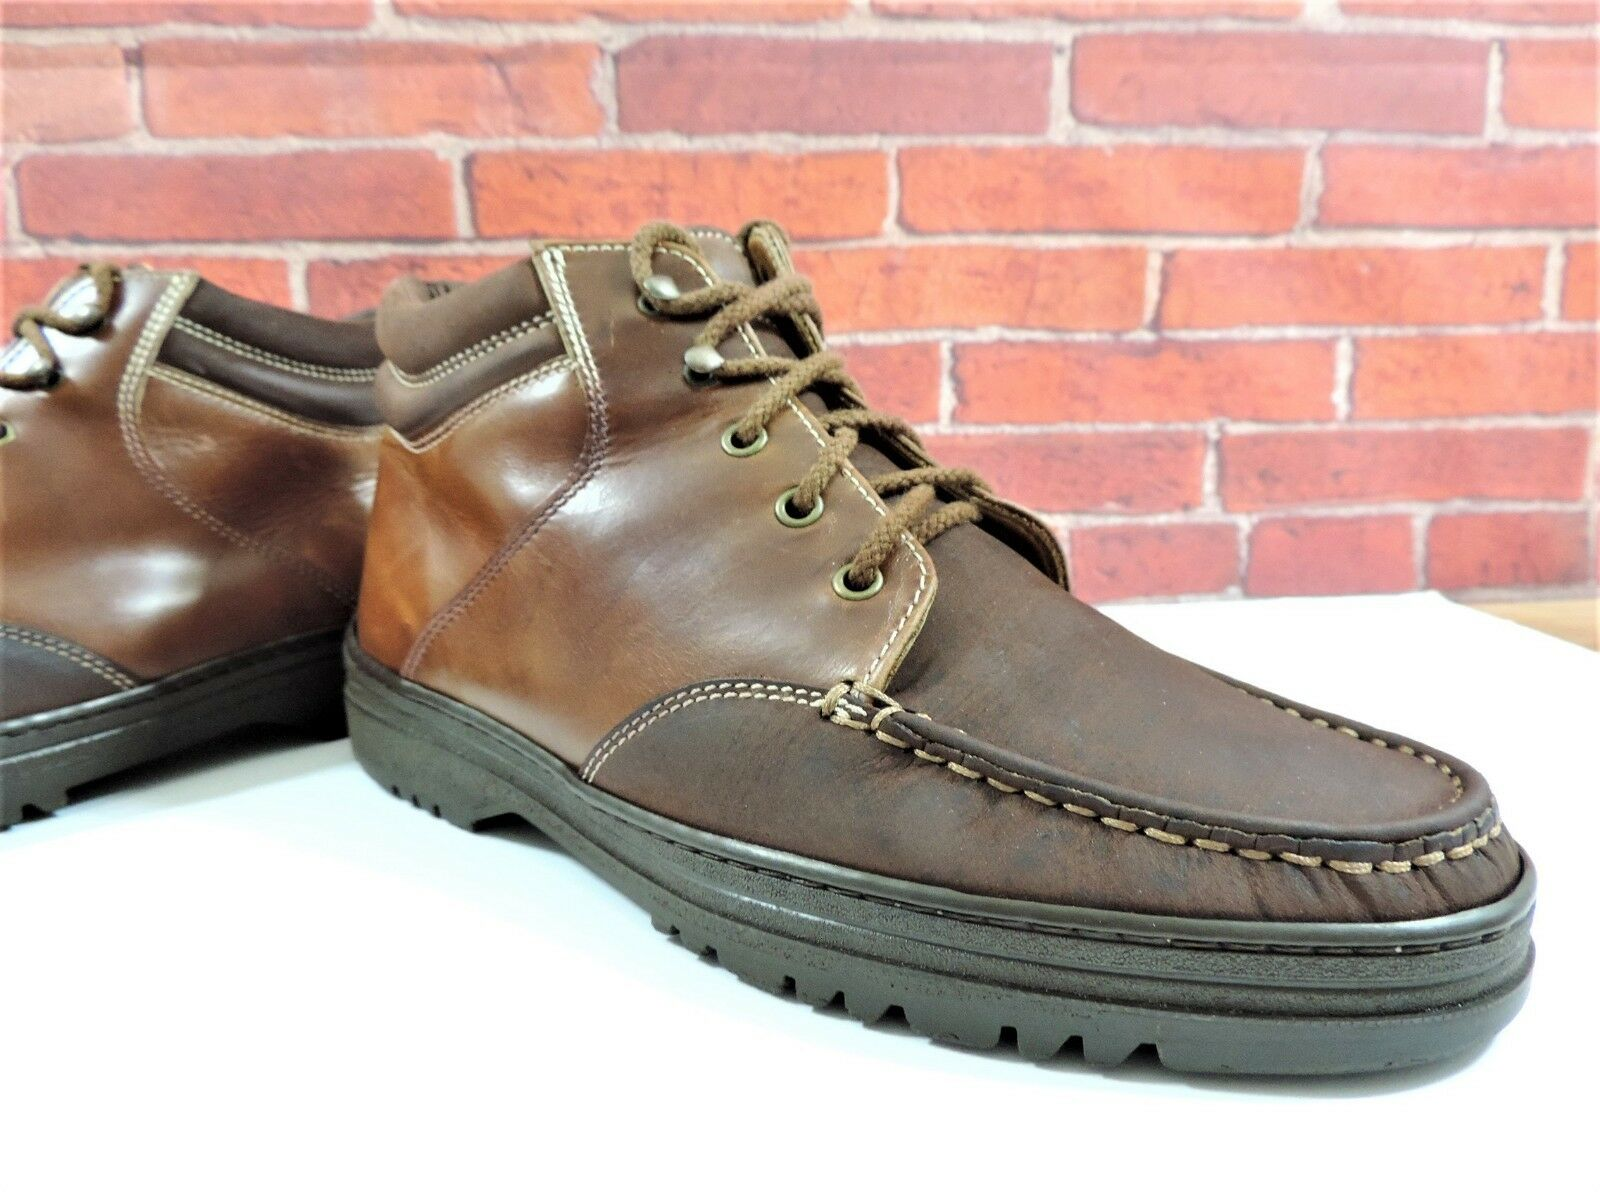 Bally Boots Walking City City City UK 9 US 10  EU 43 Italian Made Tan Nubuck and Leather cae2ee